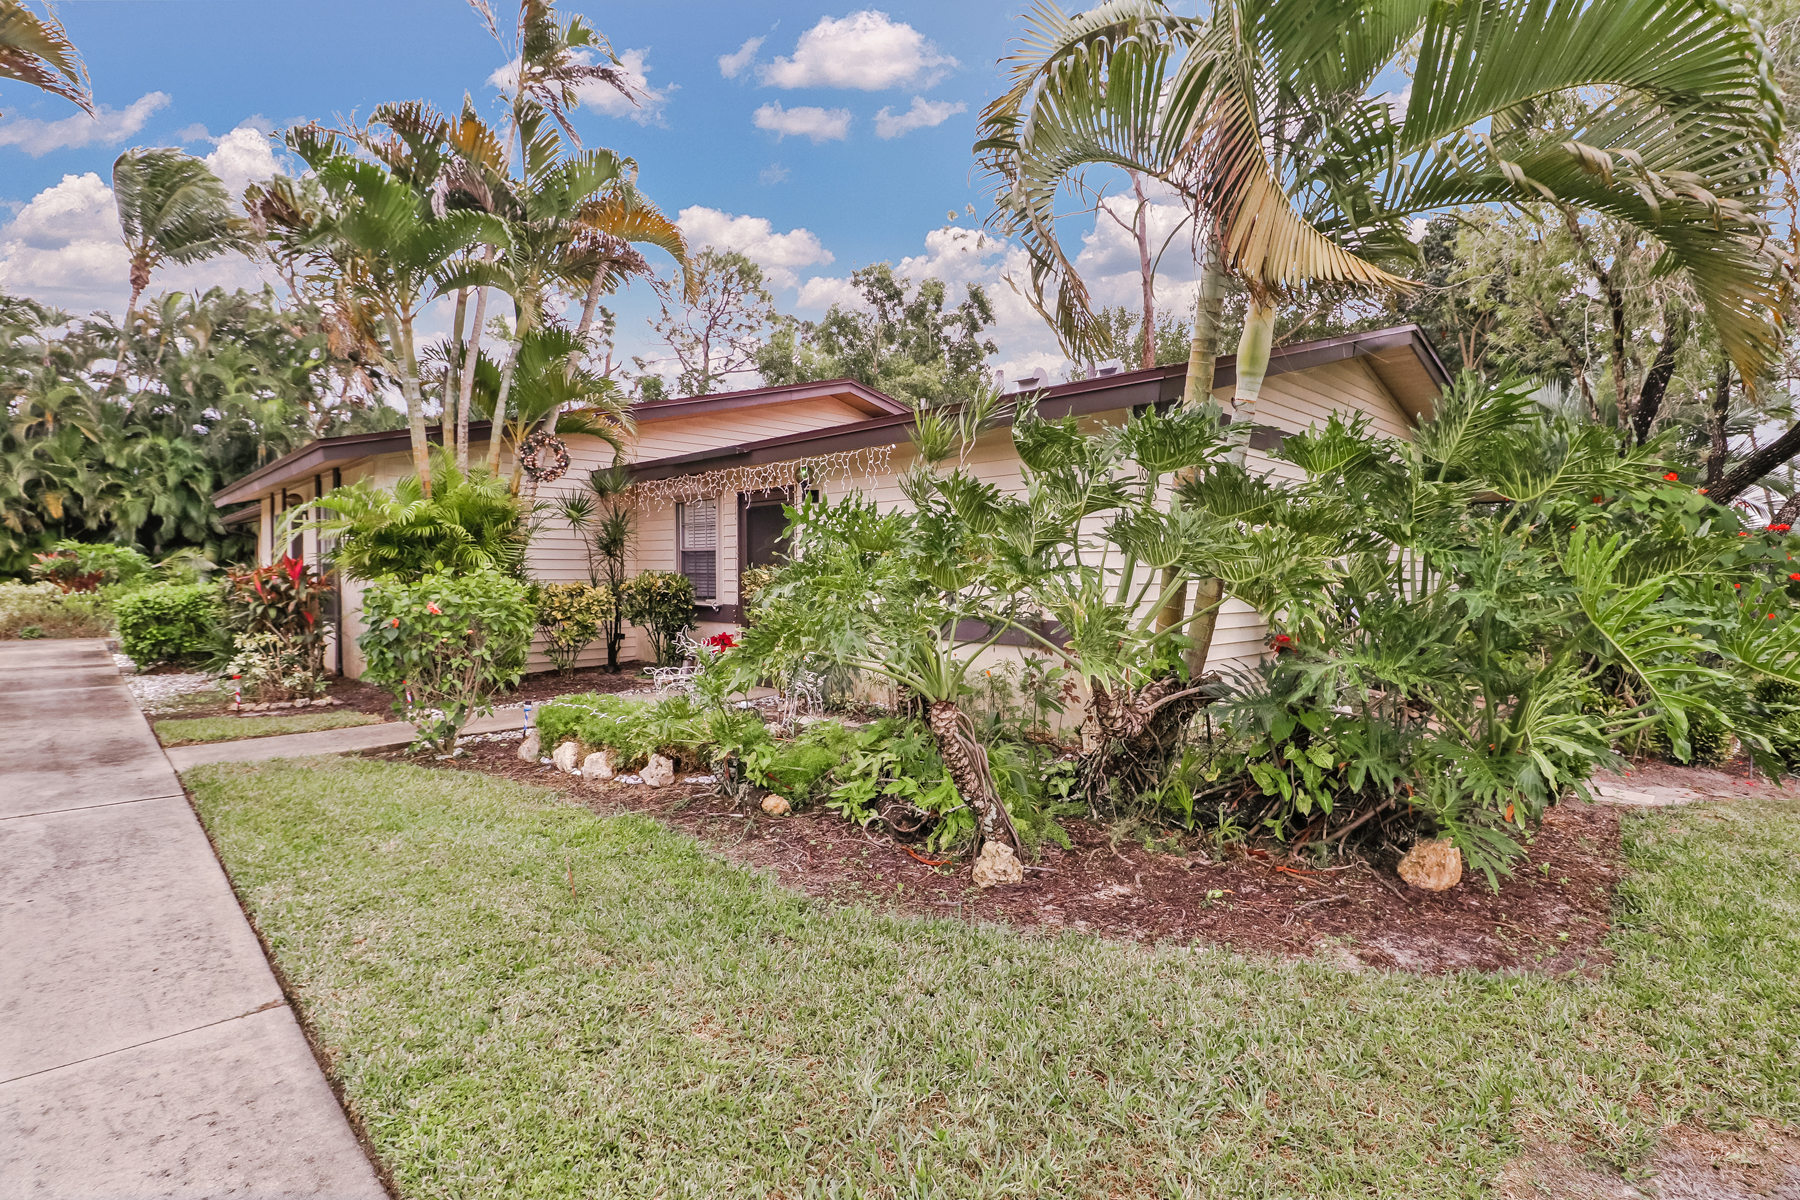 Boca Ciega Village Jewel for Sale!